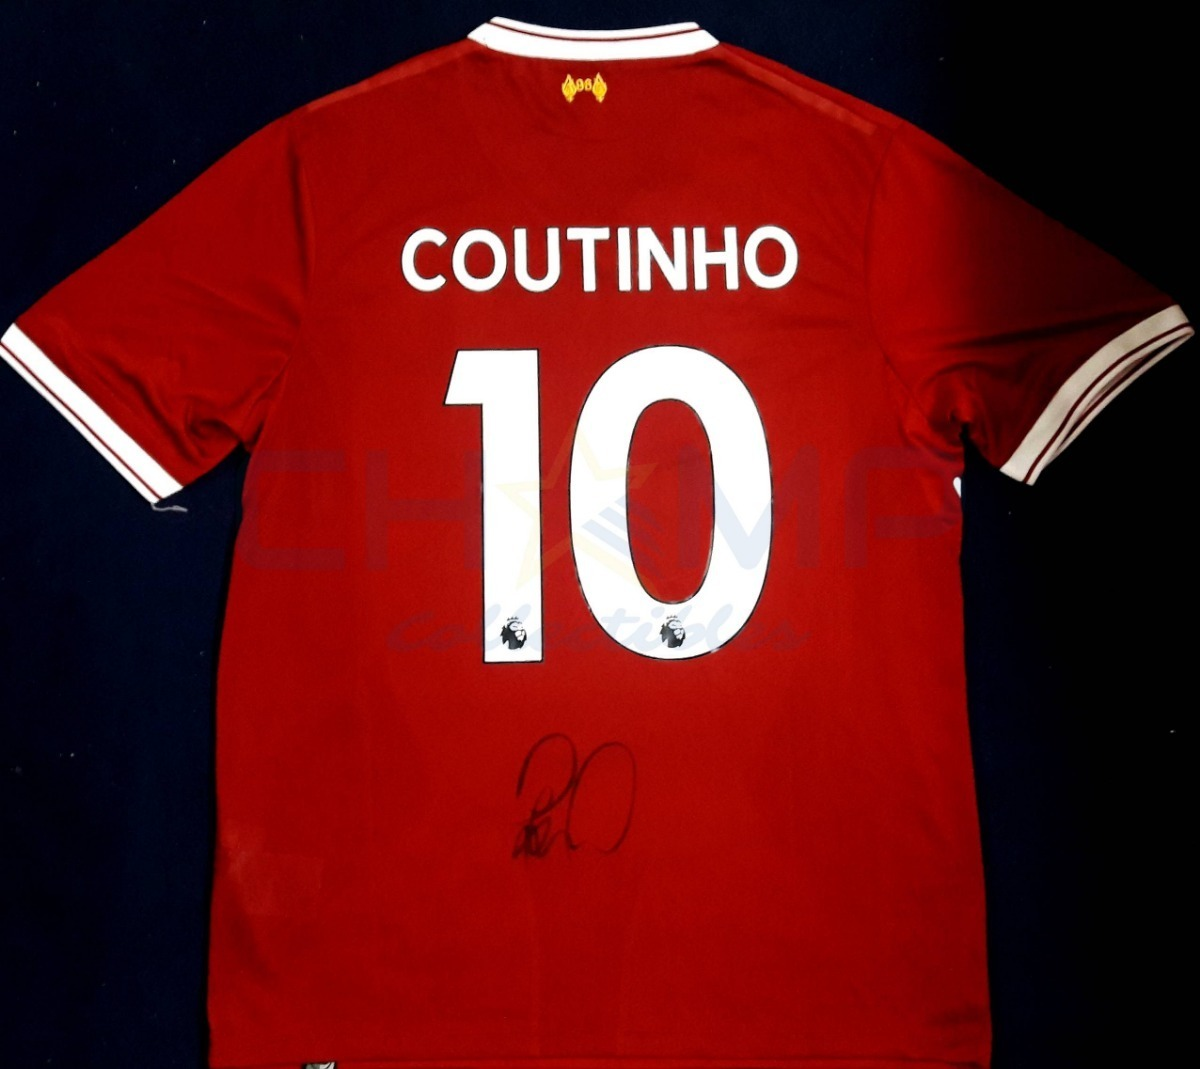 huge selection of 38ffb 315c9 Jersey Firmado Philippe Coutinho Liverpool Nb Autografo